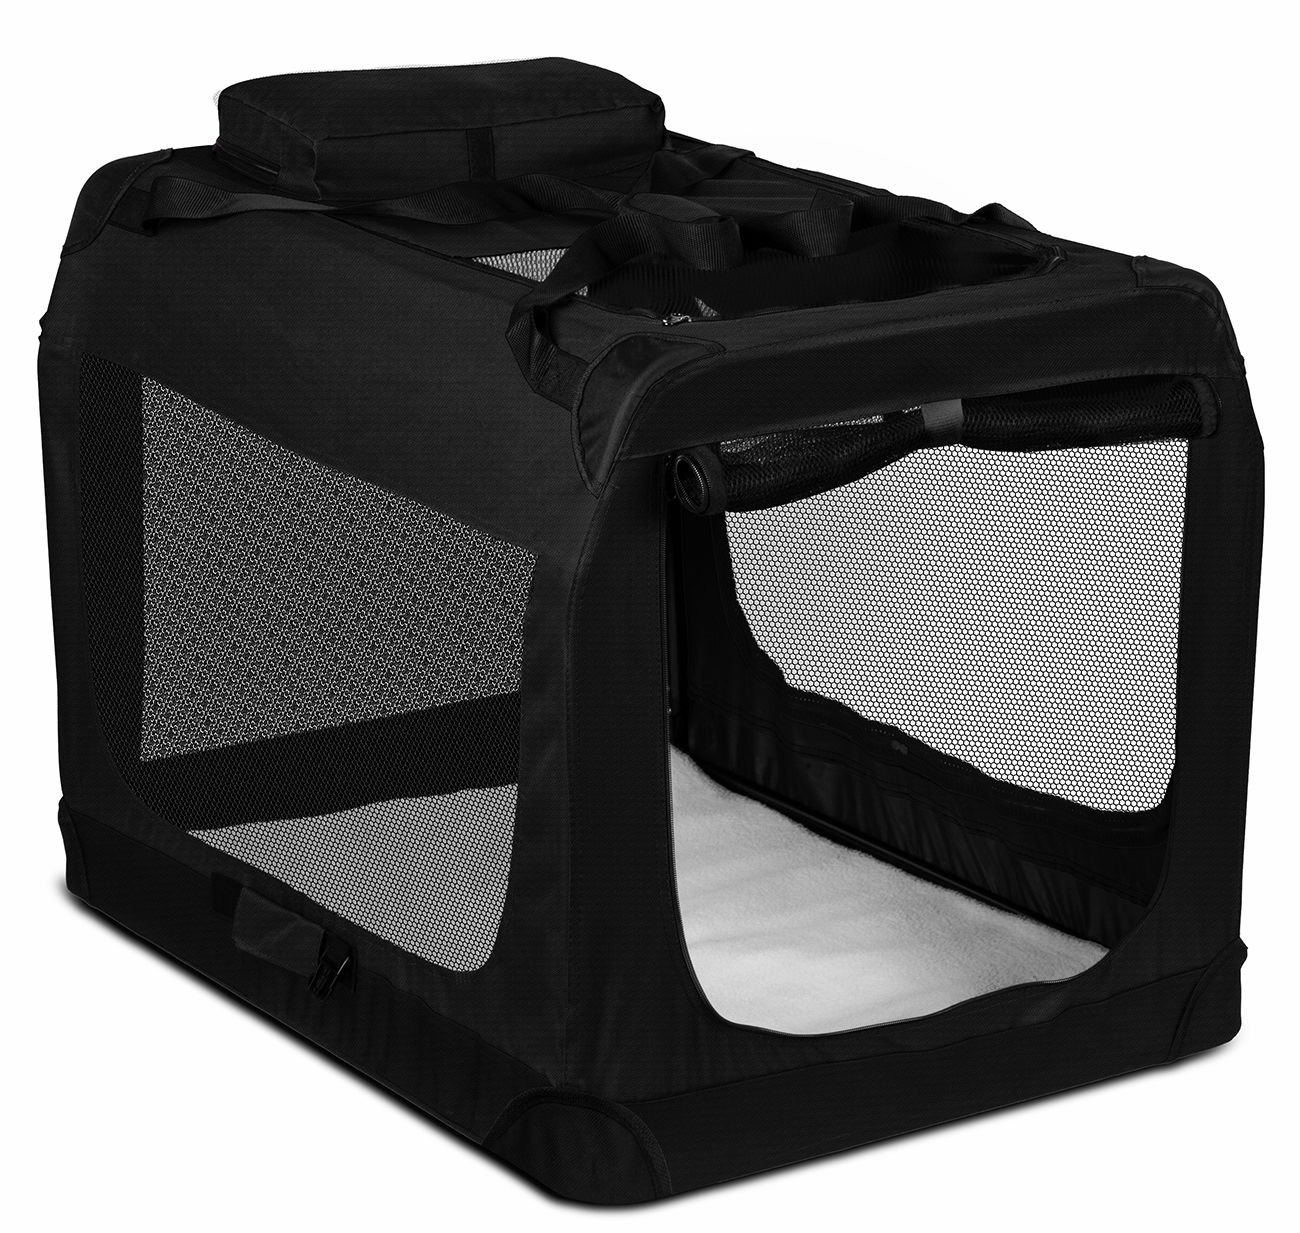 "Black Portable Dog Crate Pet Carrier Foldable Kennel Soft Sided Cage 40""x27''x28'' Size 3XL"